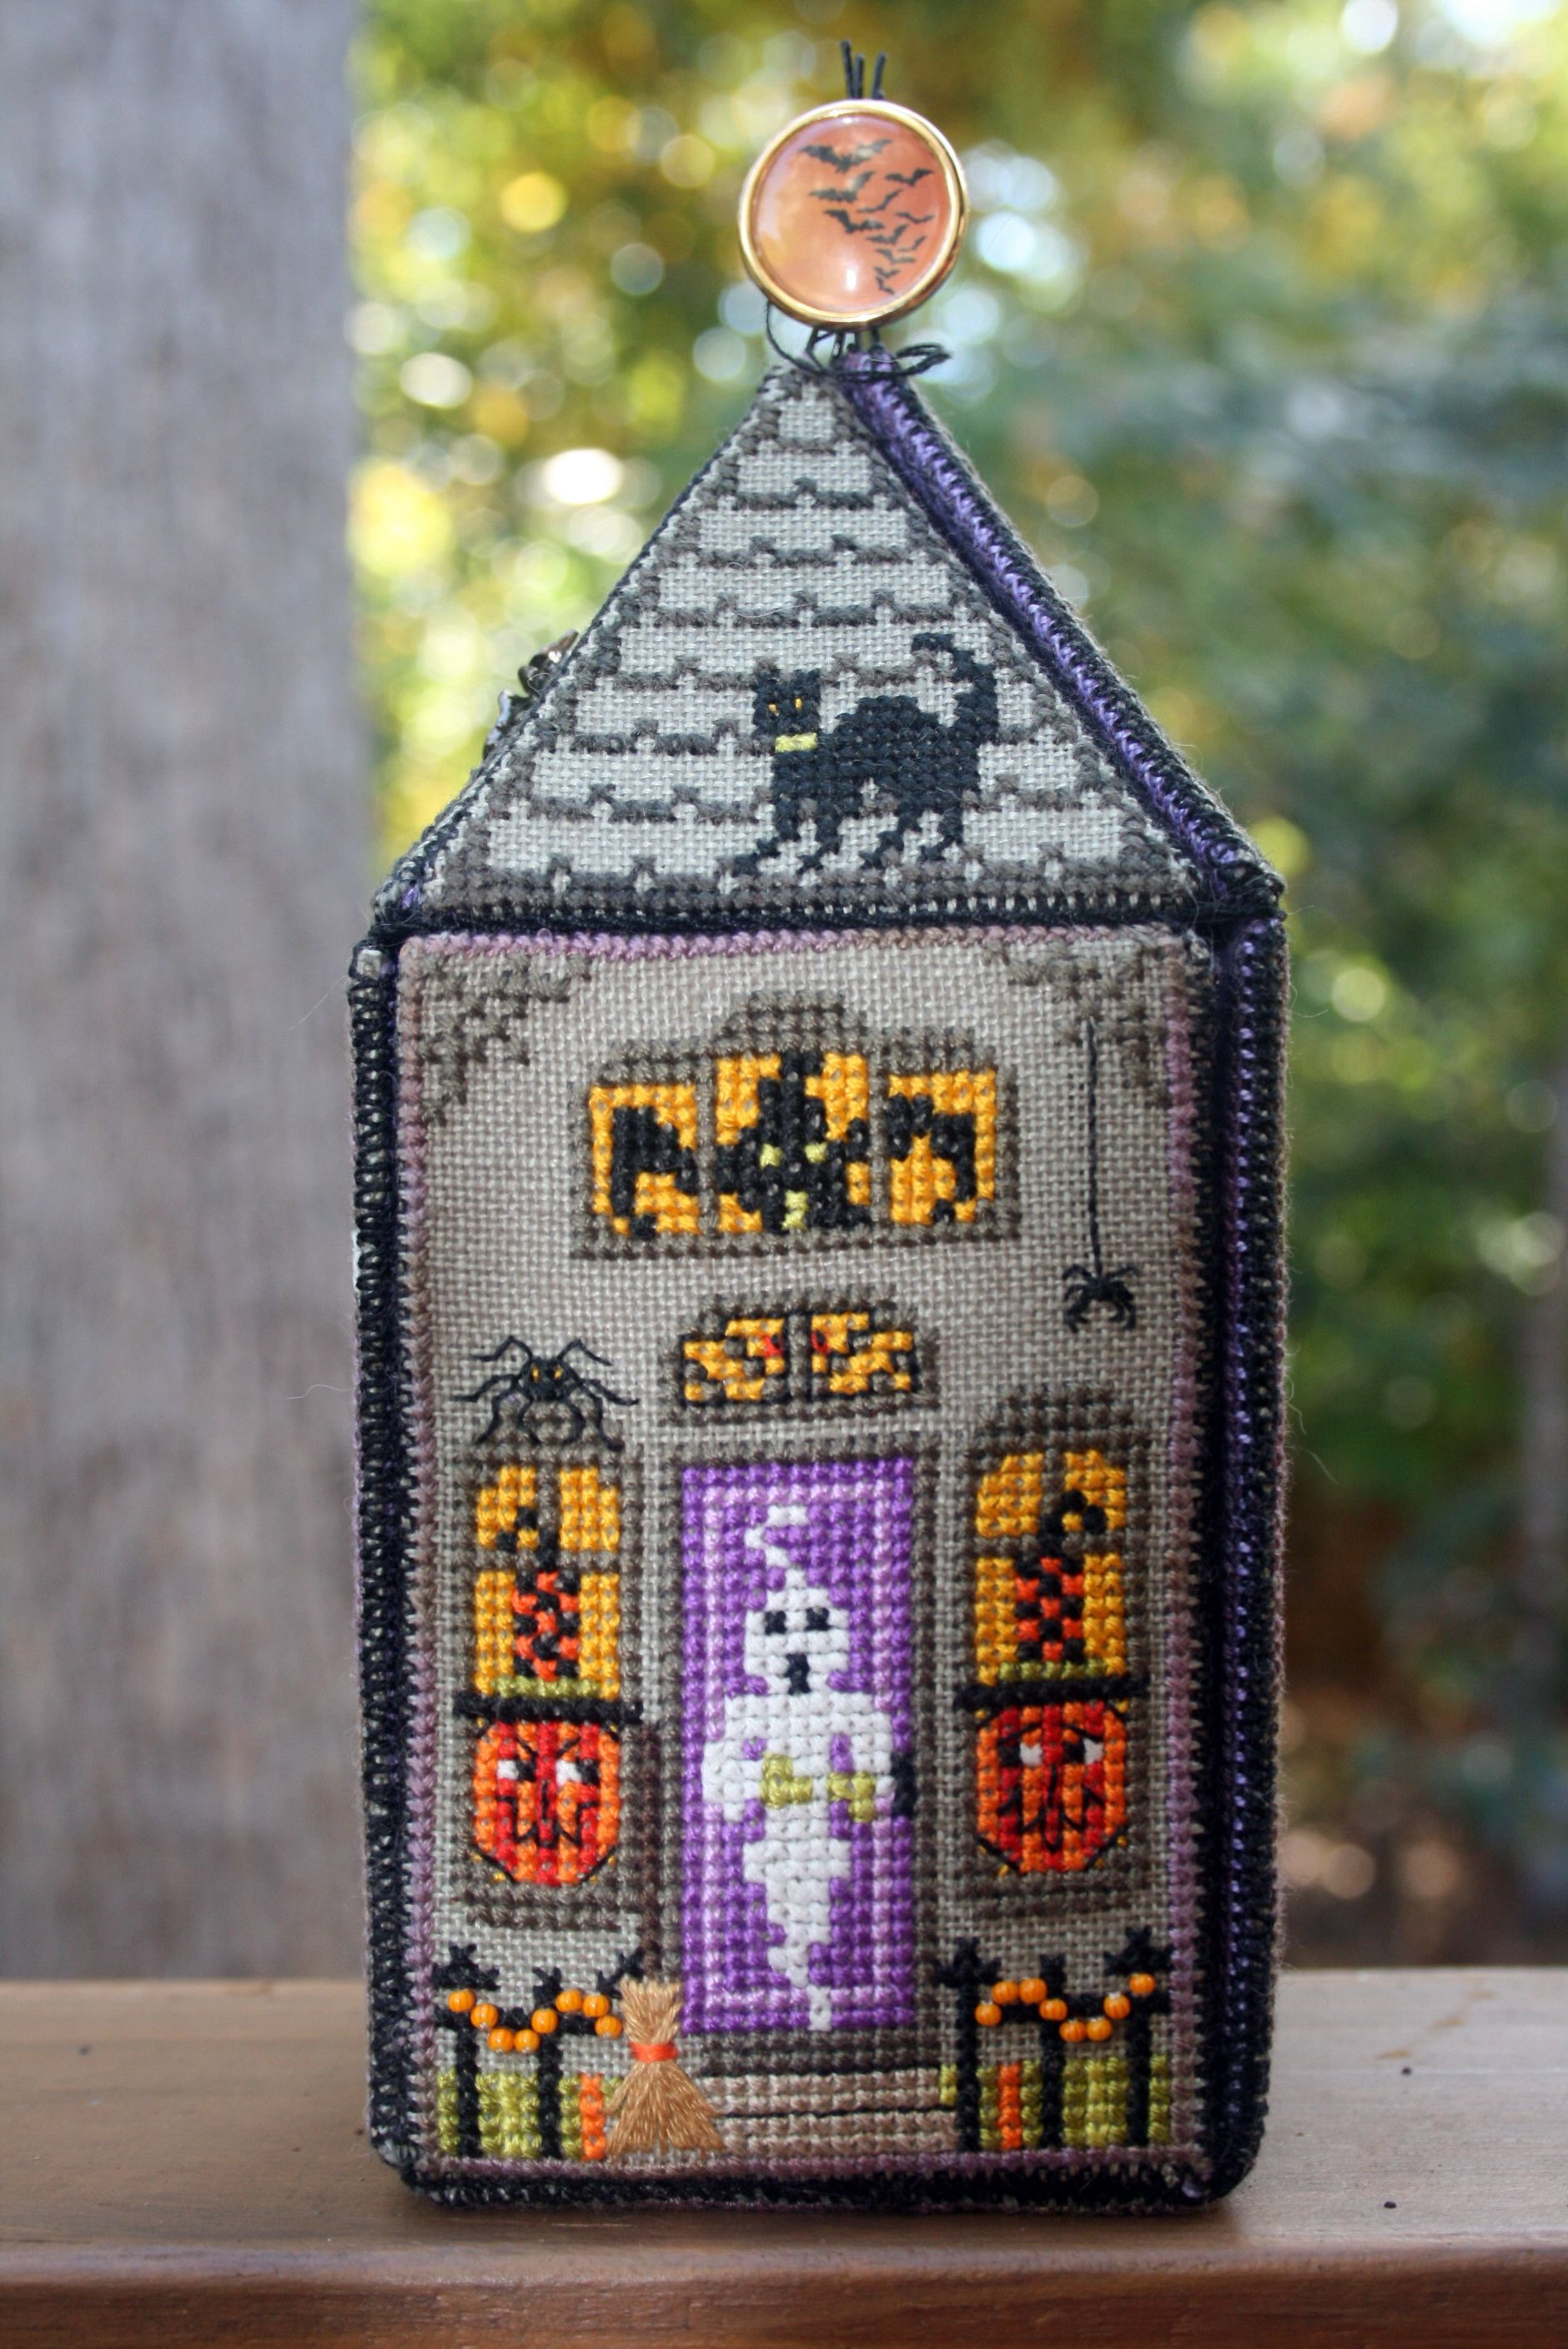 Nan' Scream House Needlework Halloween Cross Stitches Stitch Embroidery 123